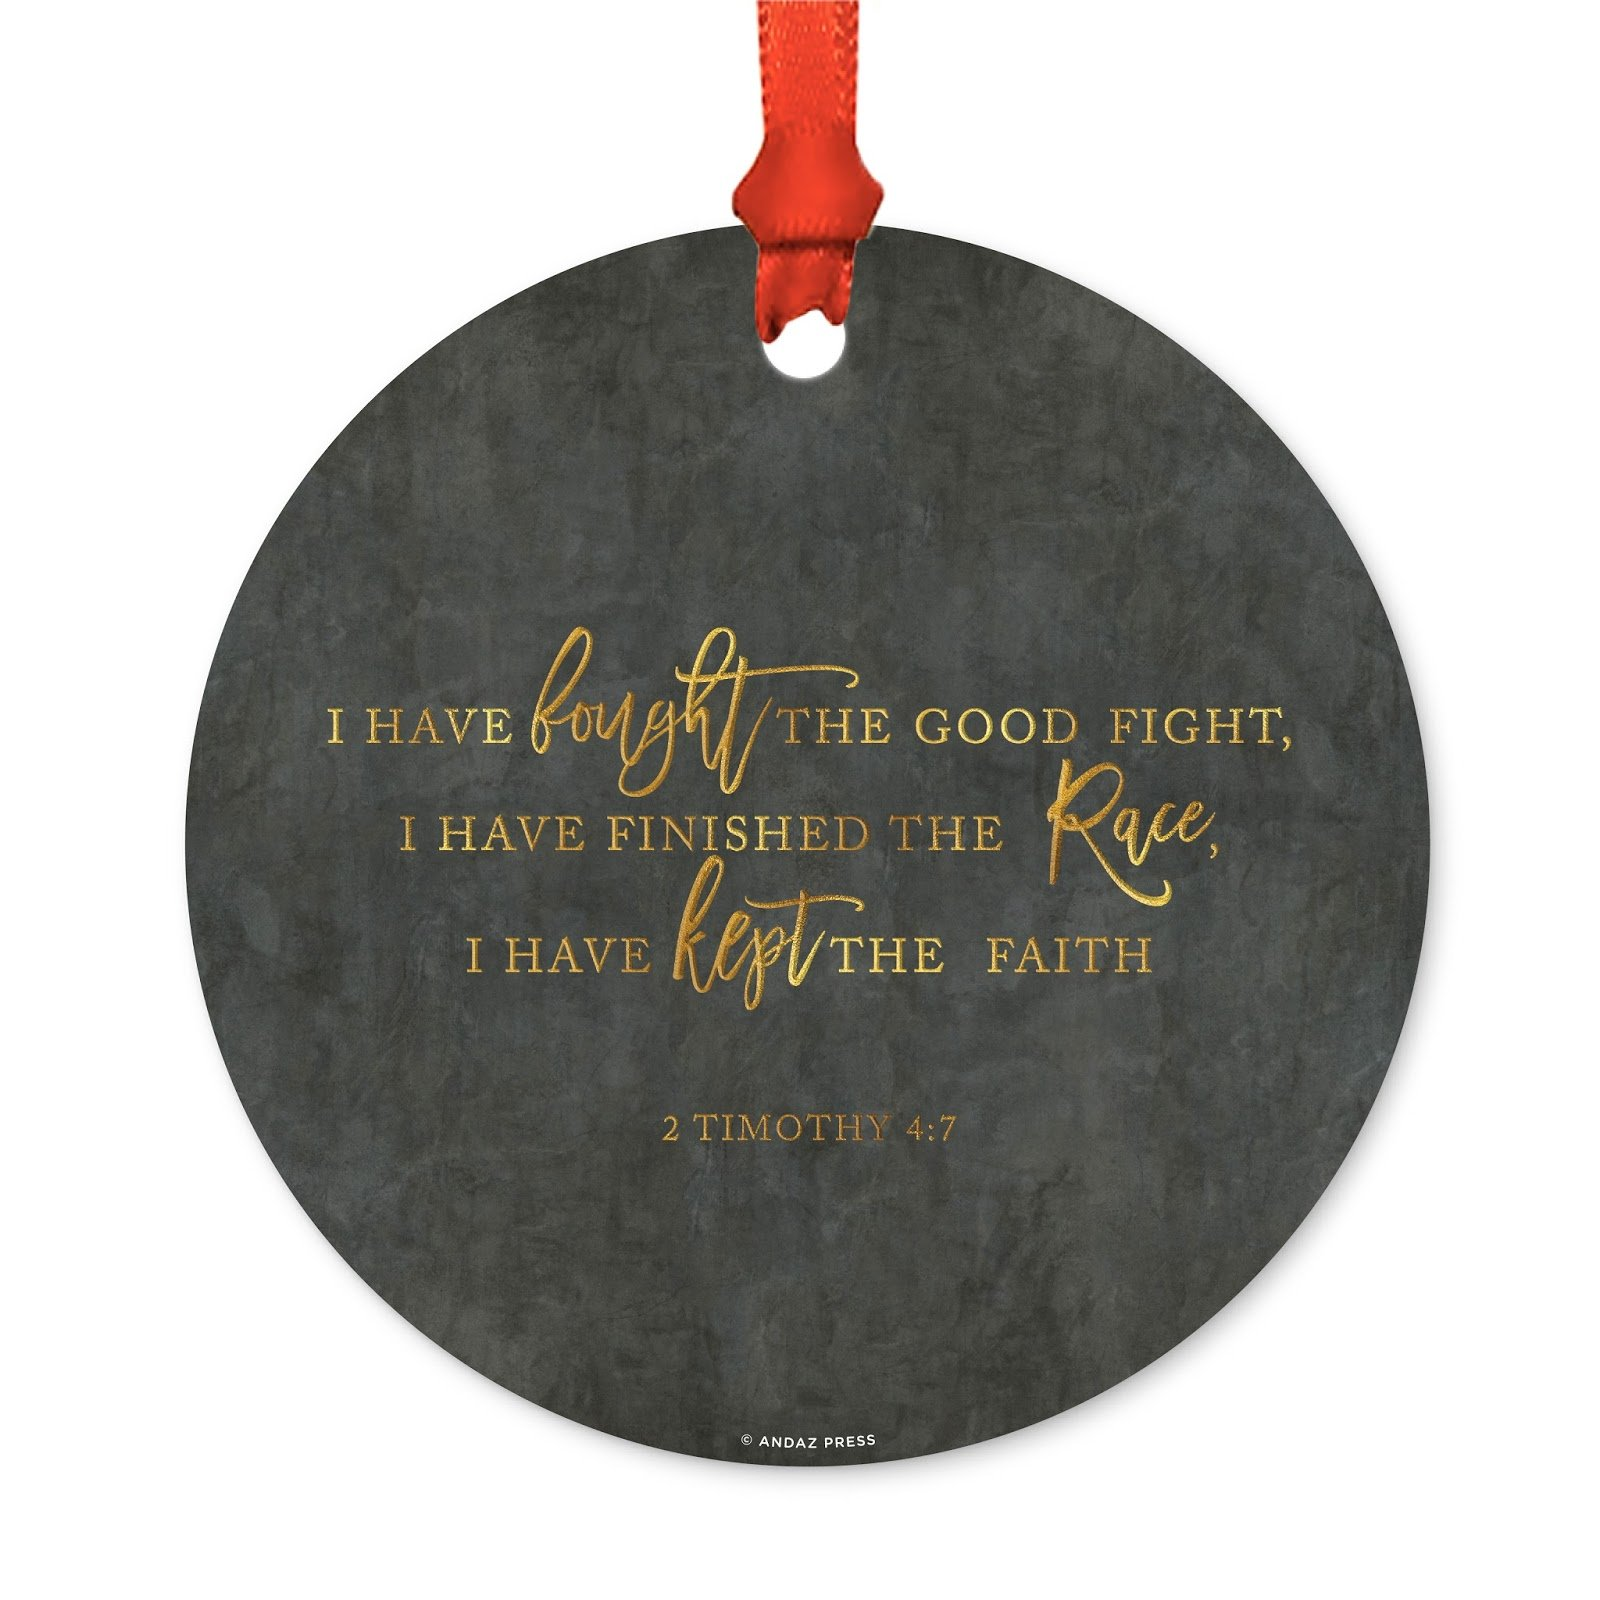 Andaz Press Memorial Round Metal Christmas Ornament, I have fought the good fight, 1-Pack, Includes Ribbon and Gift Bag, Husband Wife Loss Death Bereavement Memory Keepsake Christian Bible Gift